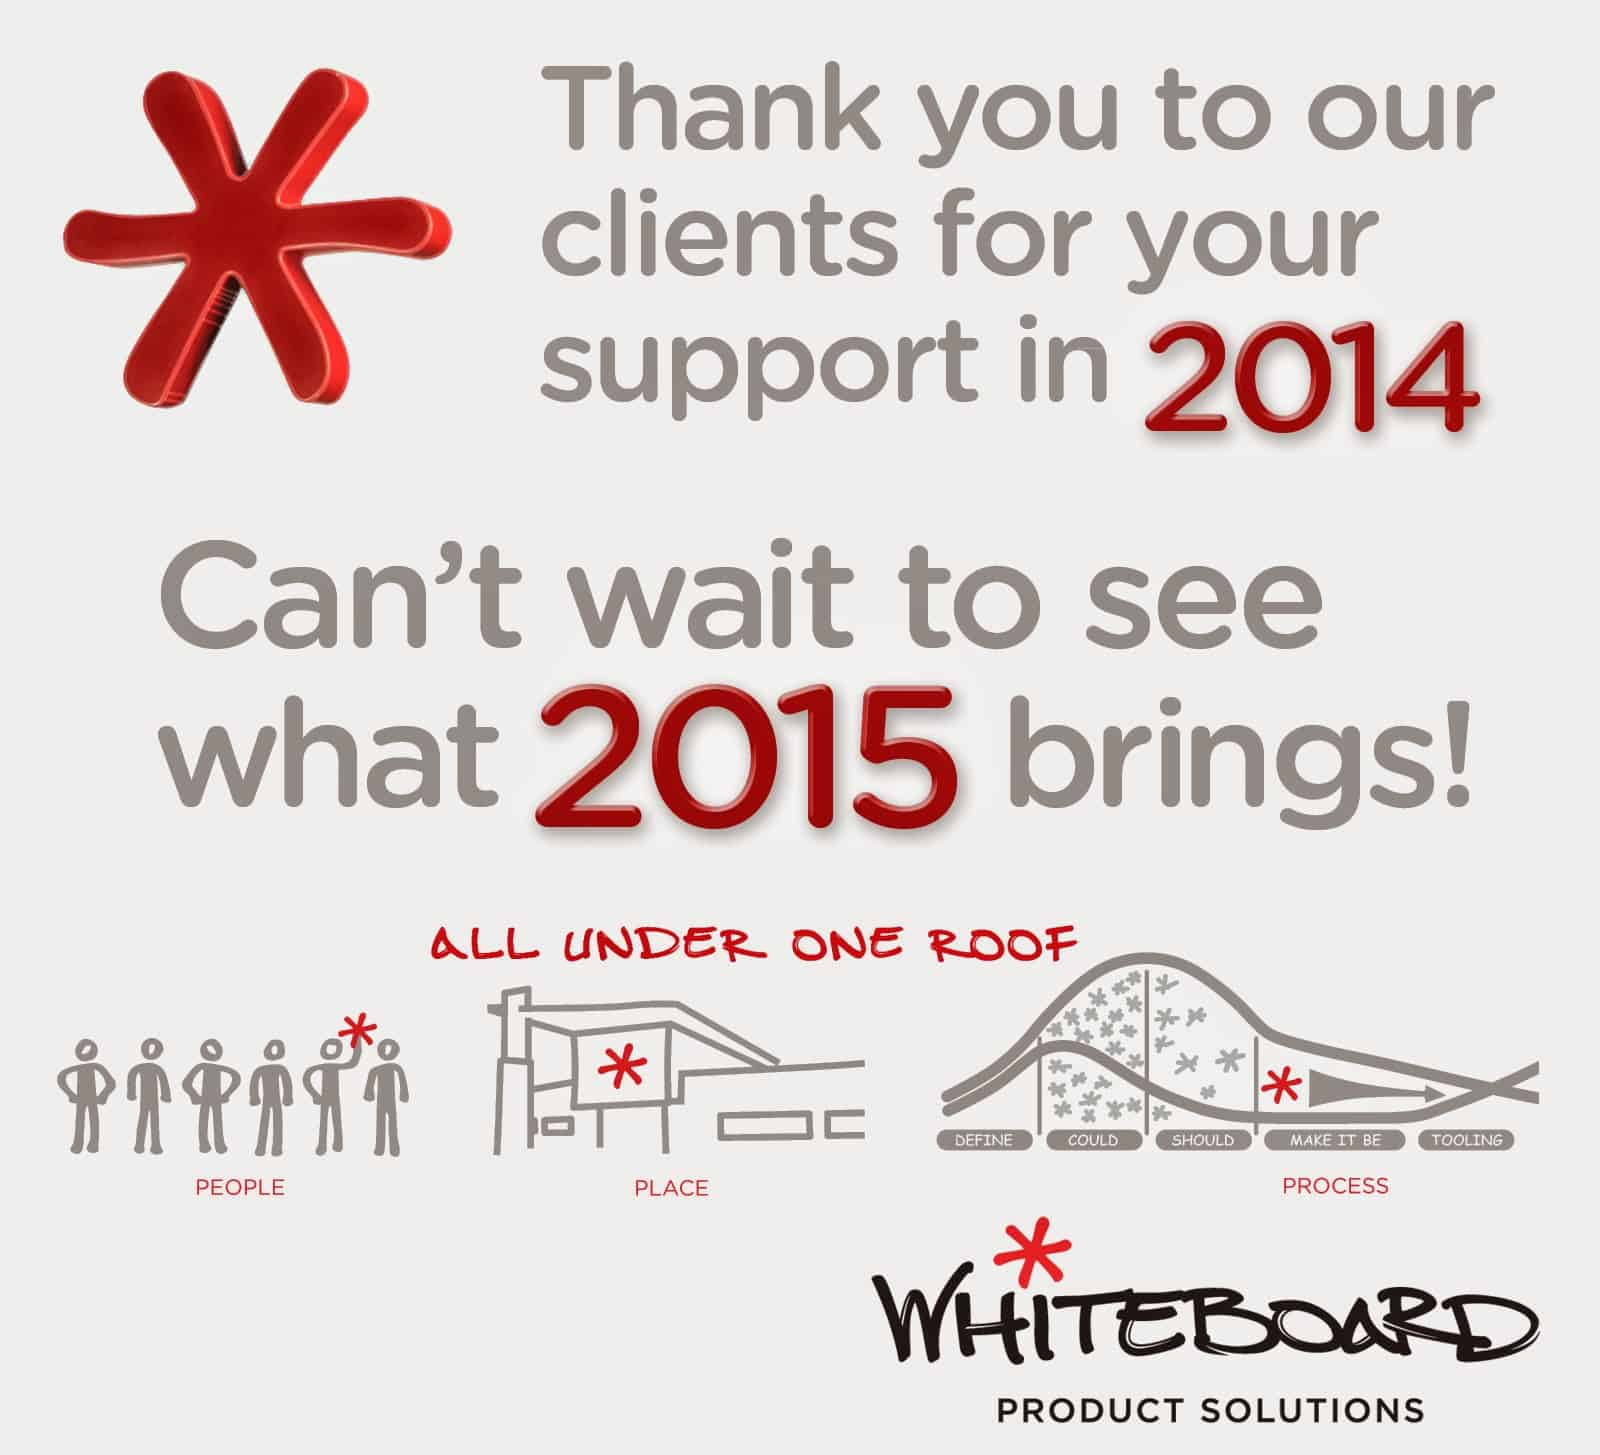 WhiteBoard Product Solutions Thank You 2014